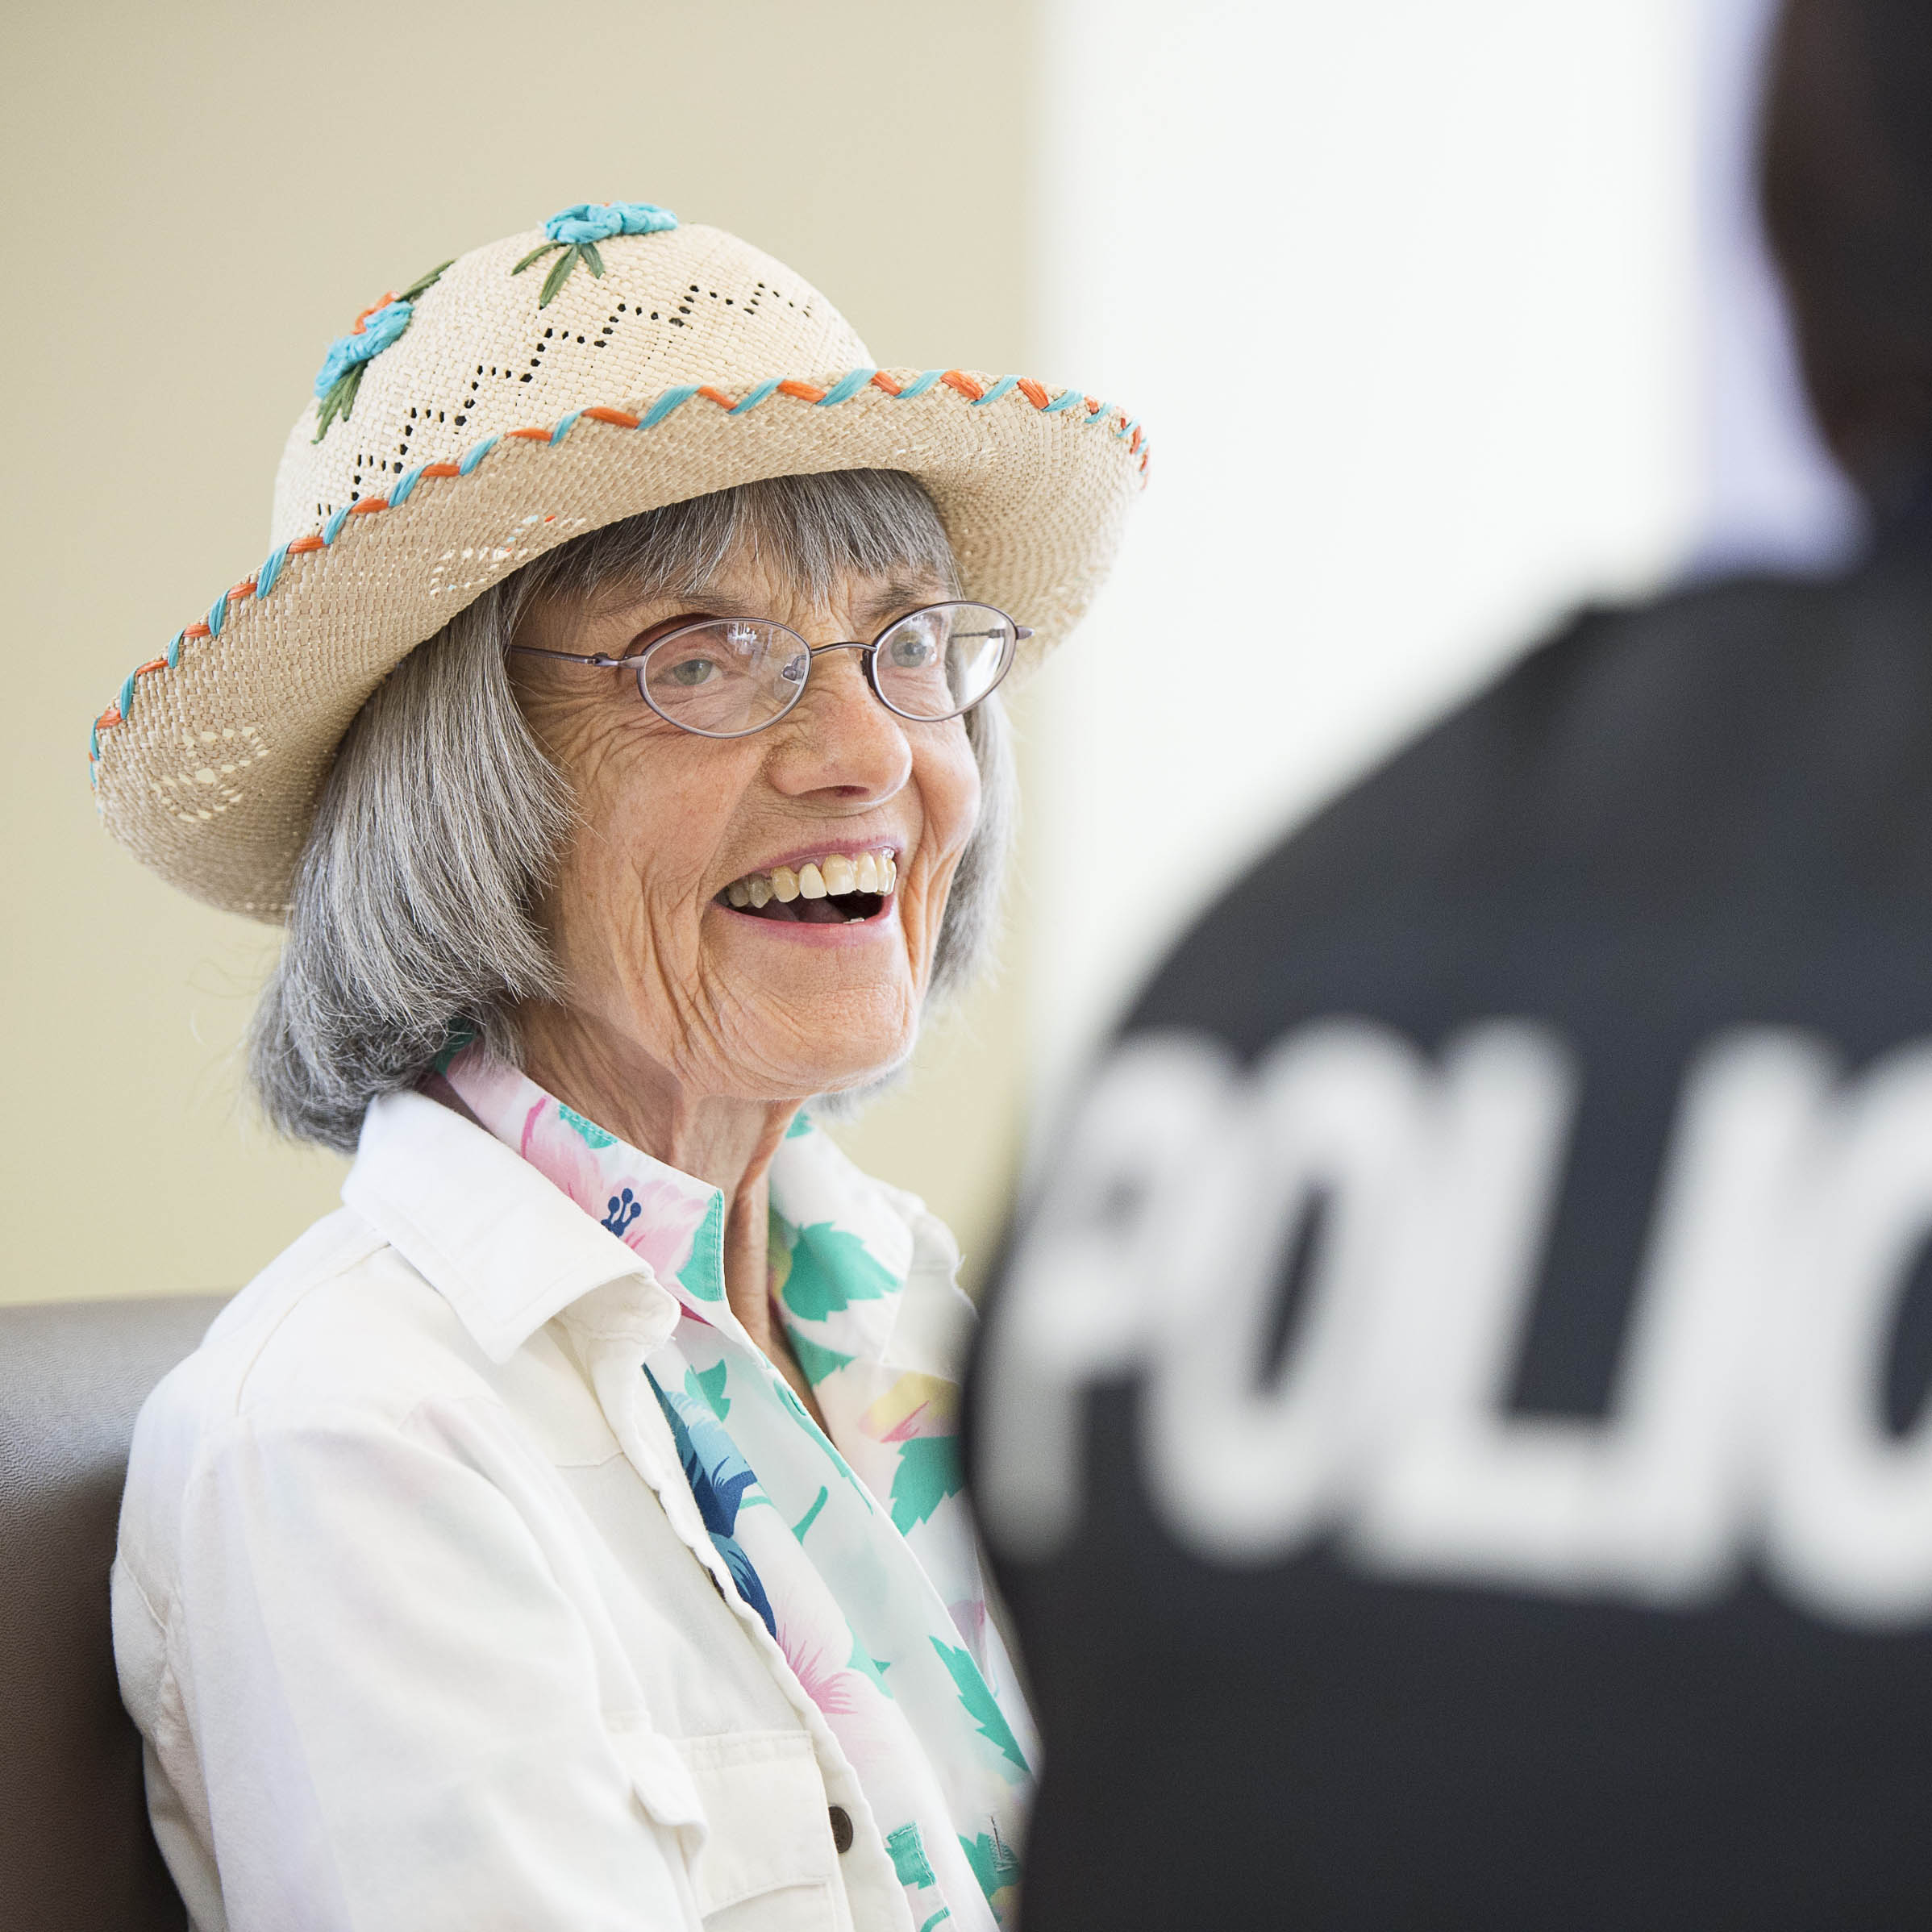 Seniors' month is a time to recognize our elders' contributions and to make sure they are safe